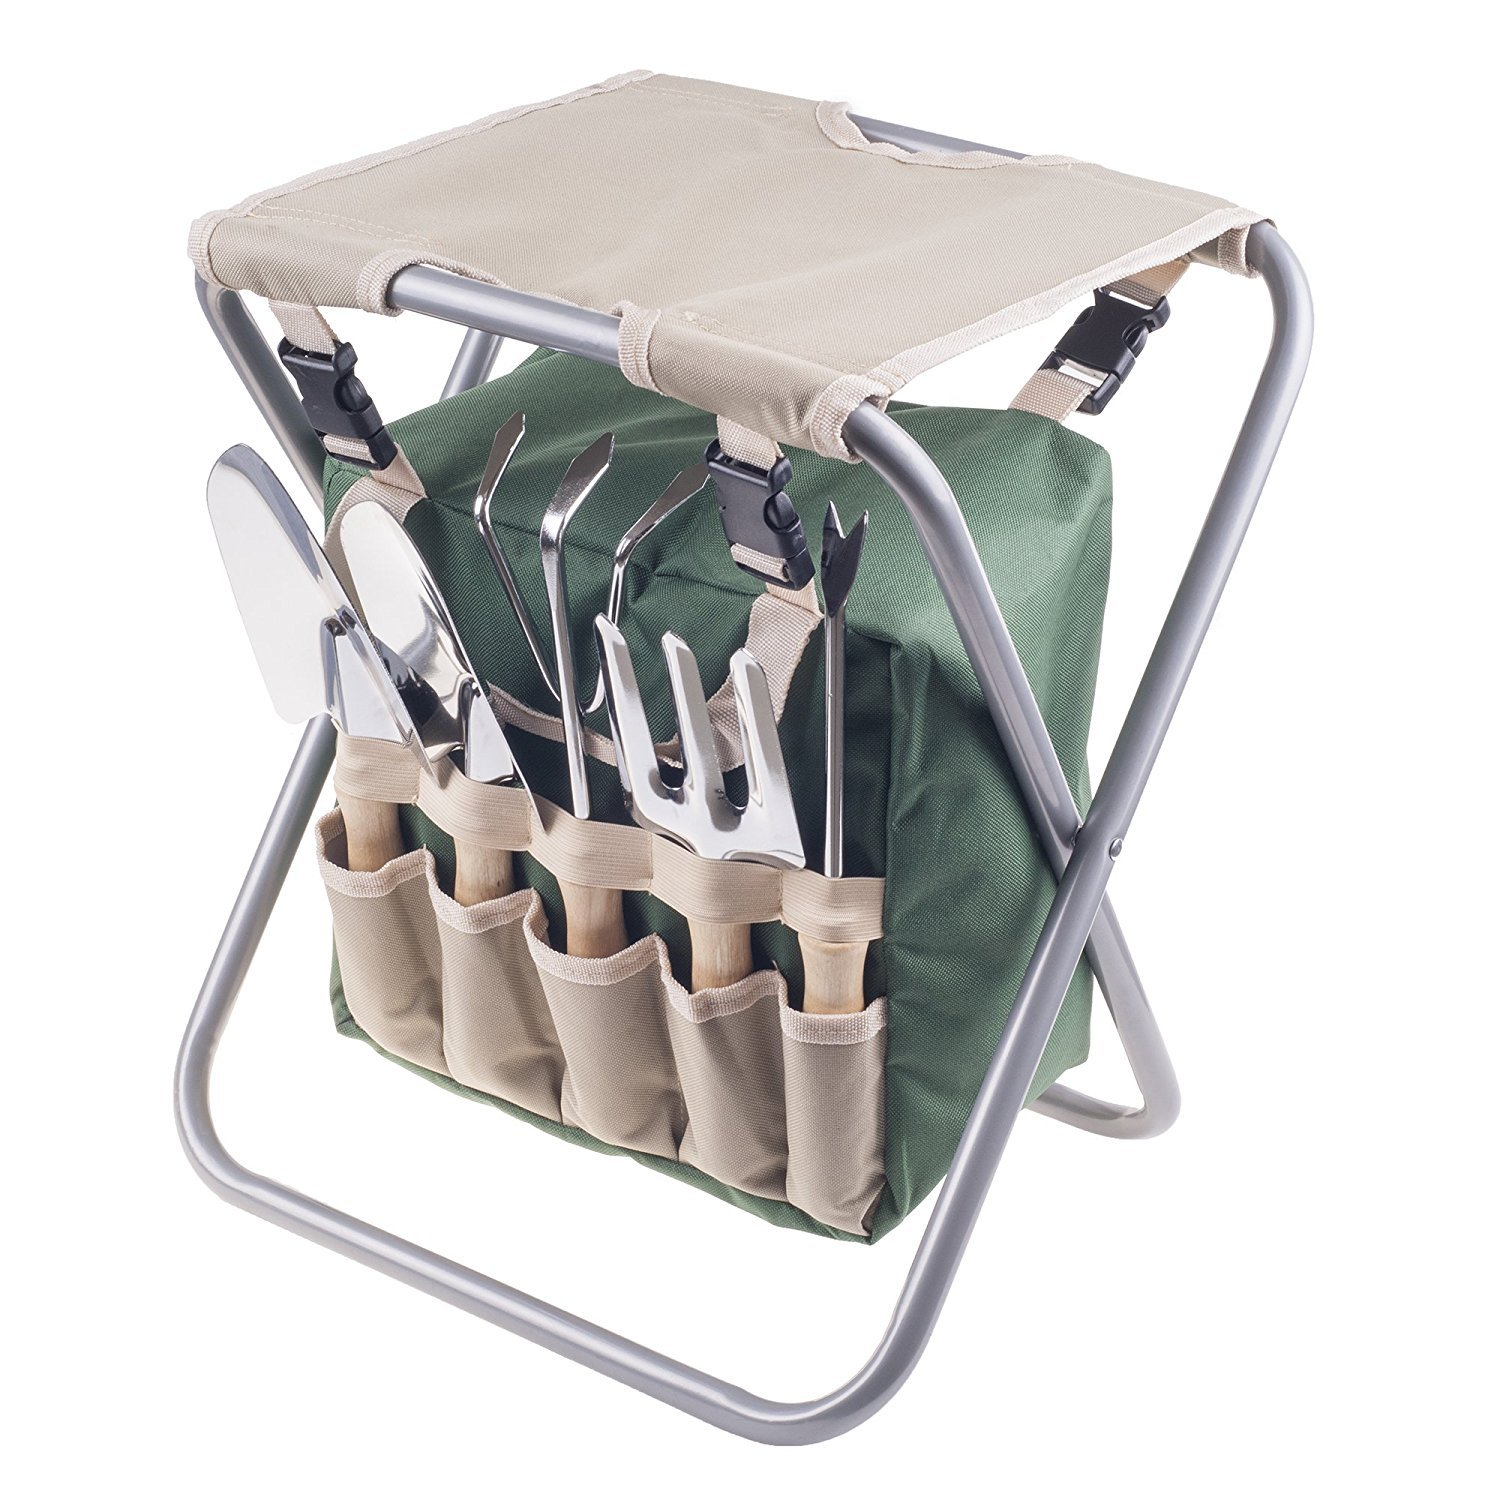 Pure Garden Folding Garden Stool with Tool Bag Plus 5 Garden Tools